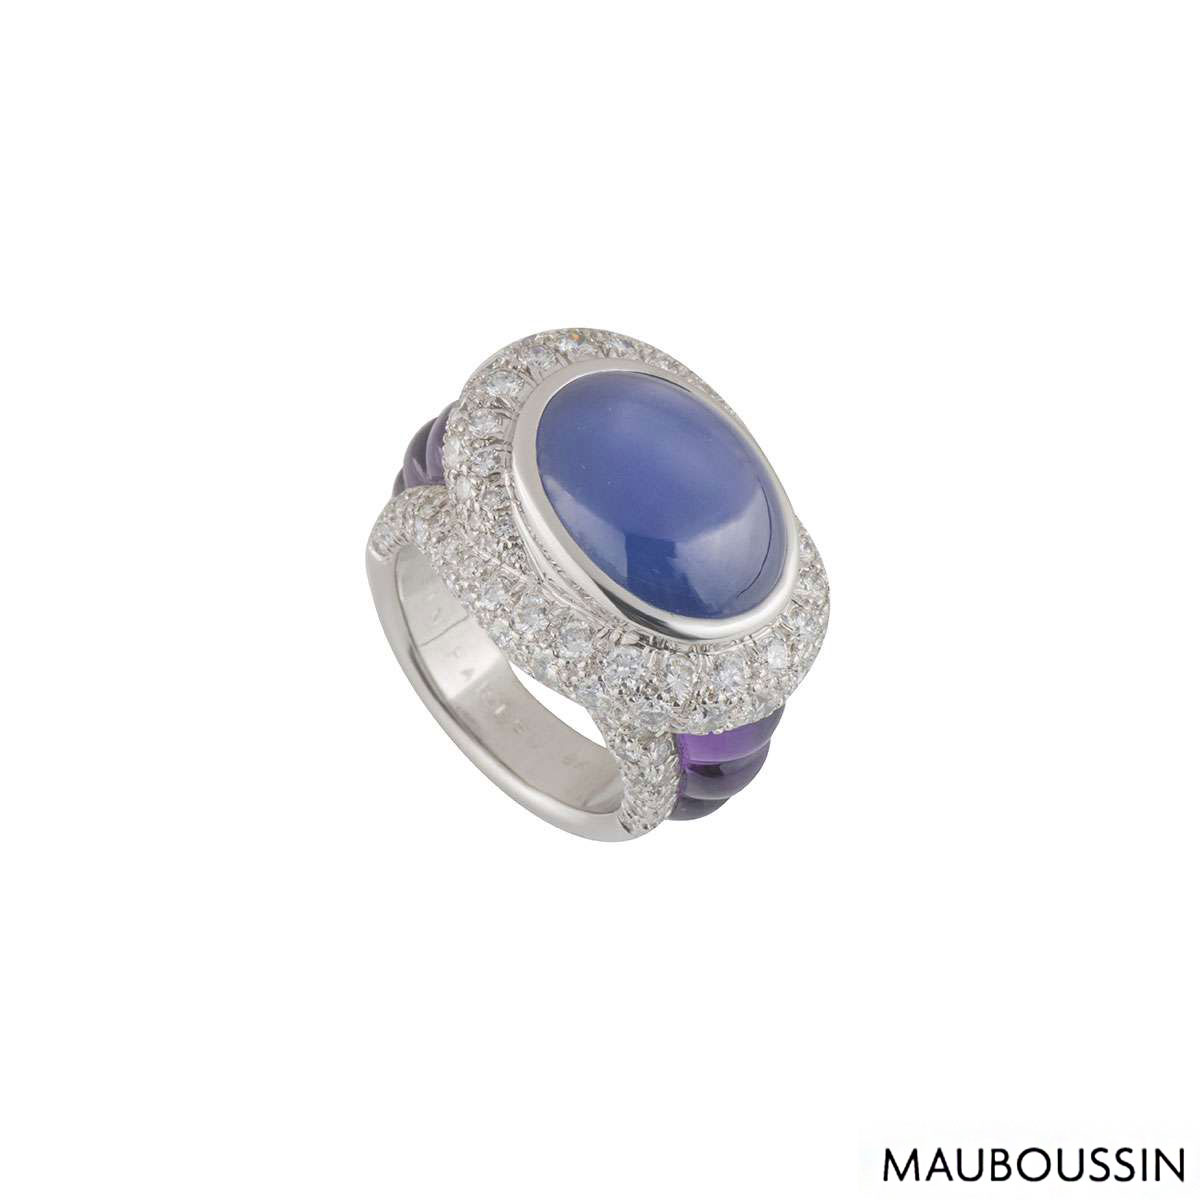 Mauboussin White Gold Diamond, Sapphire and Amethyst Ring